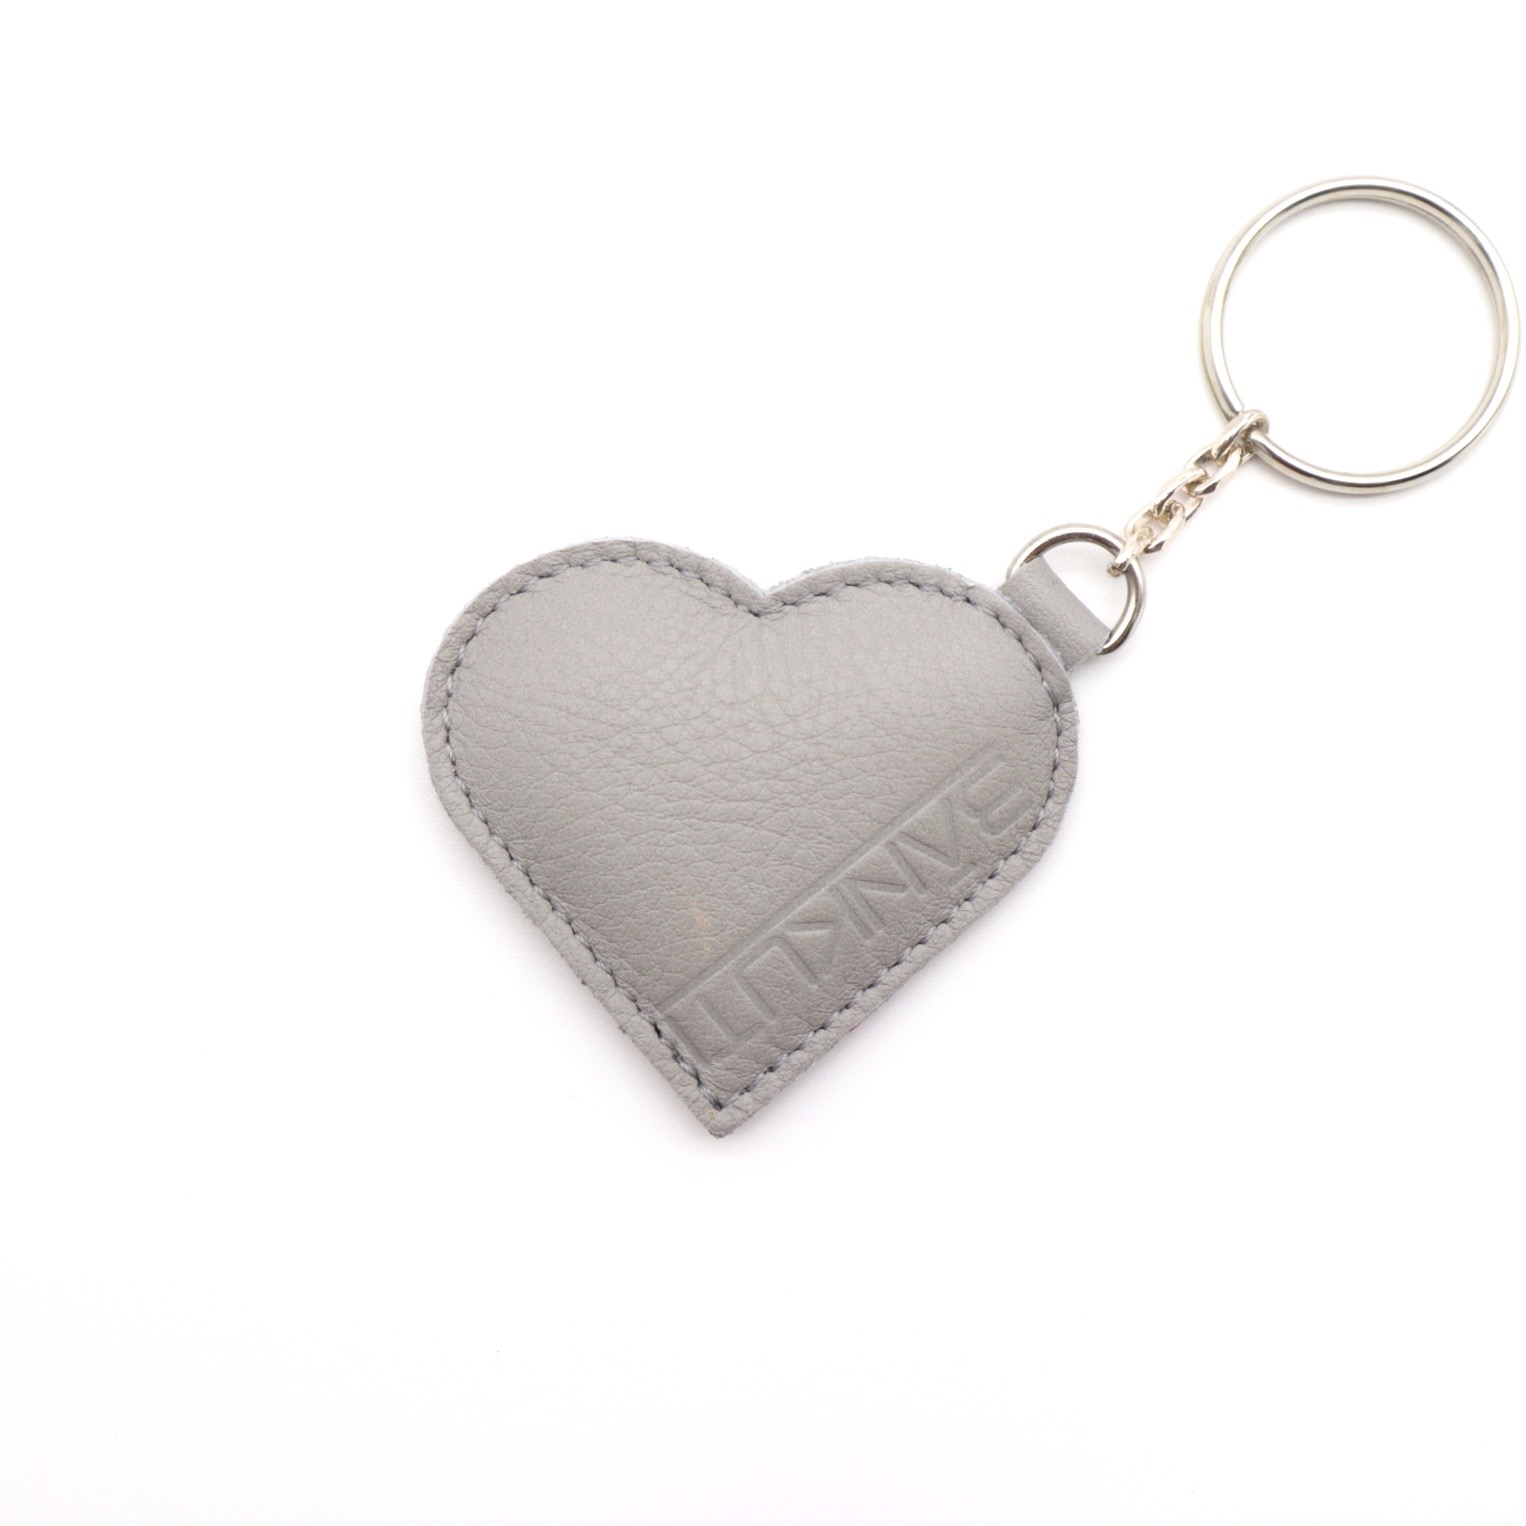 LEATHER HEART KEYCHARM GRAY/SNAKE